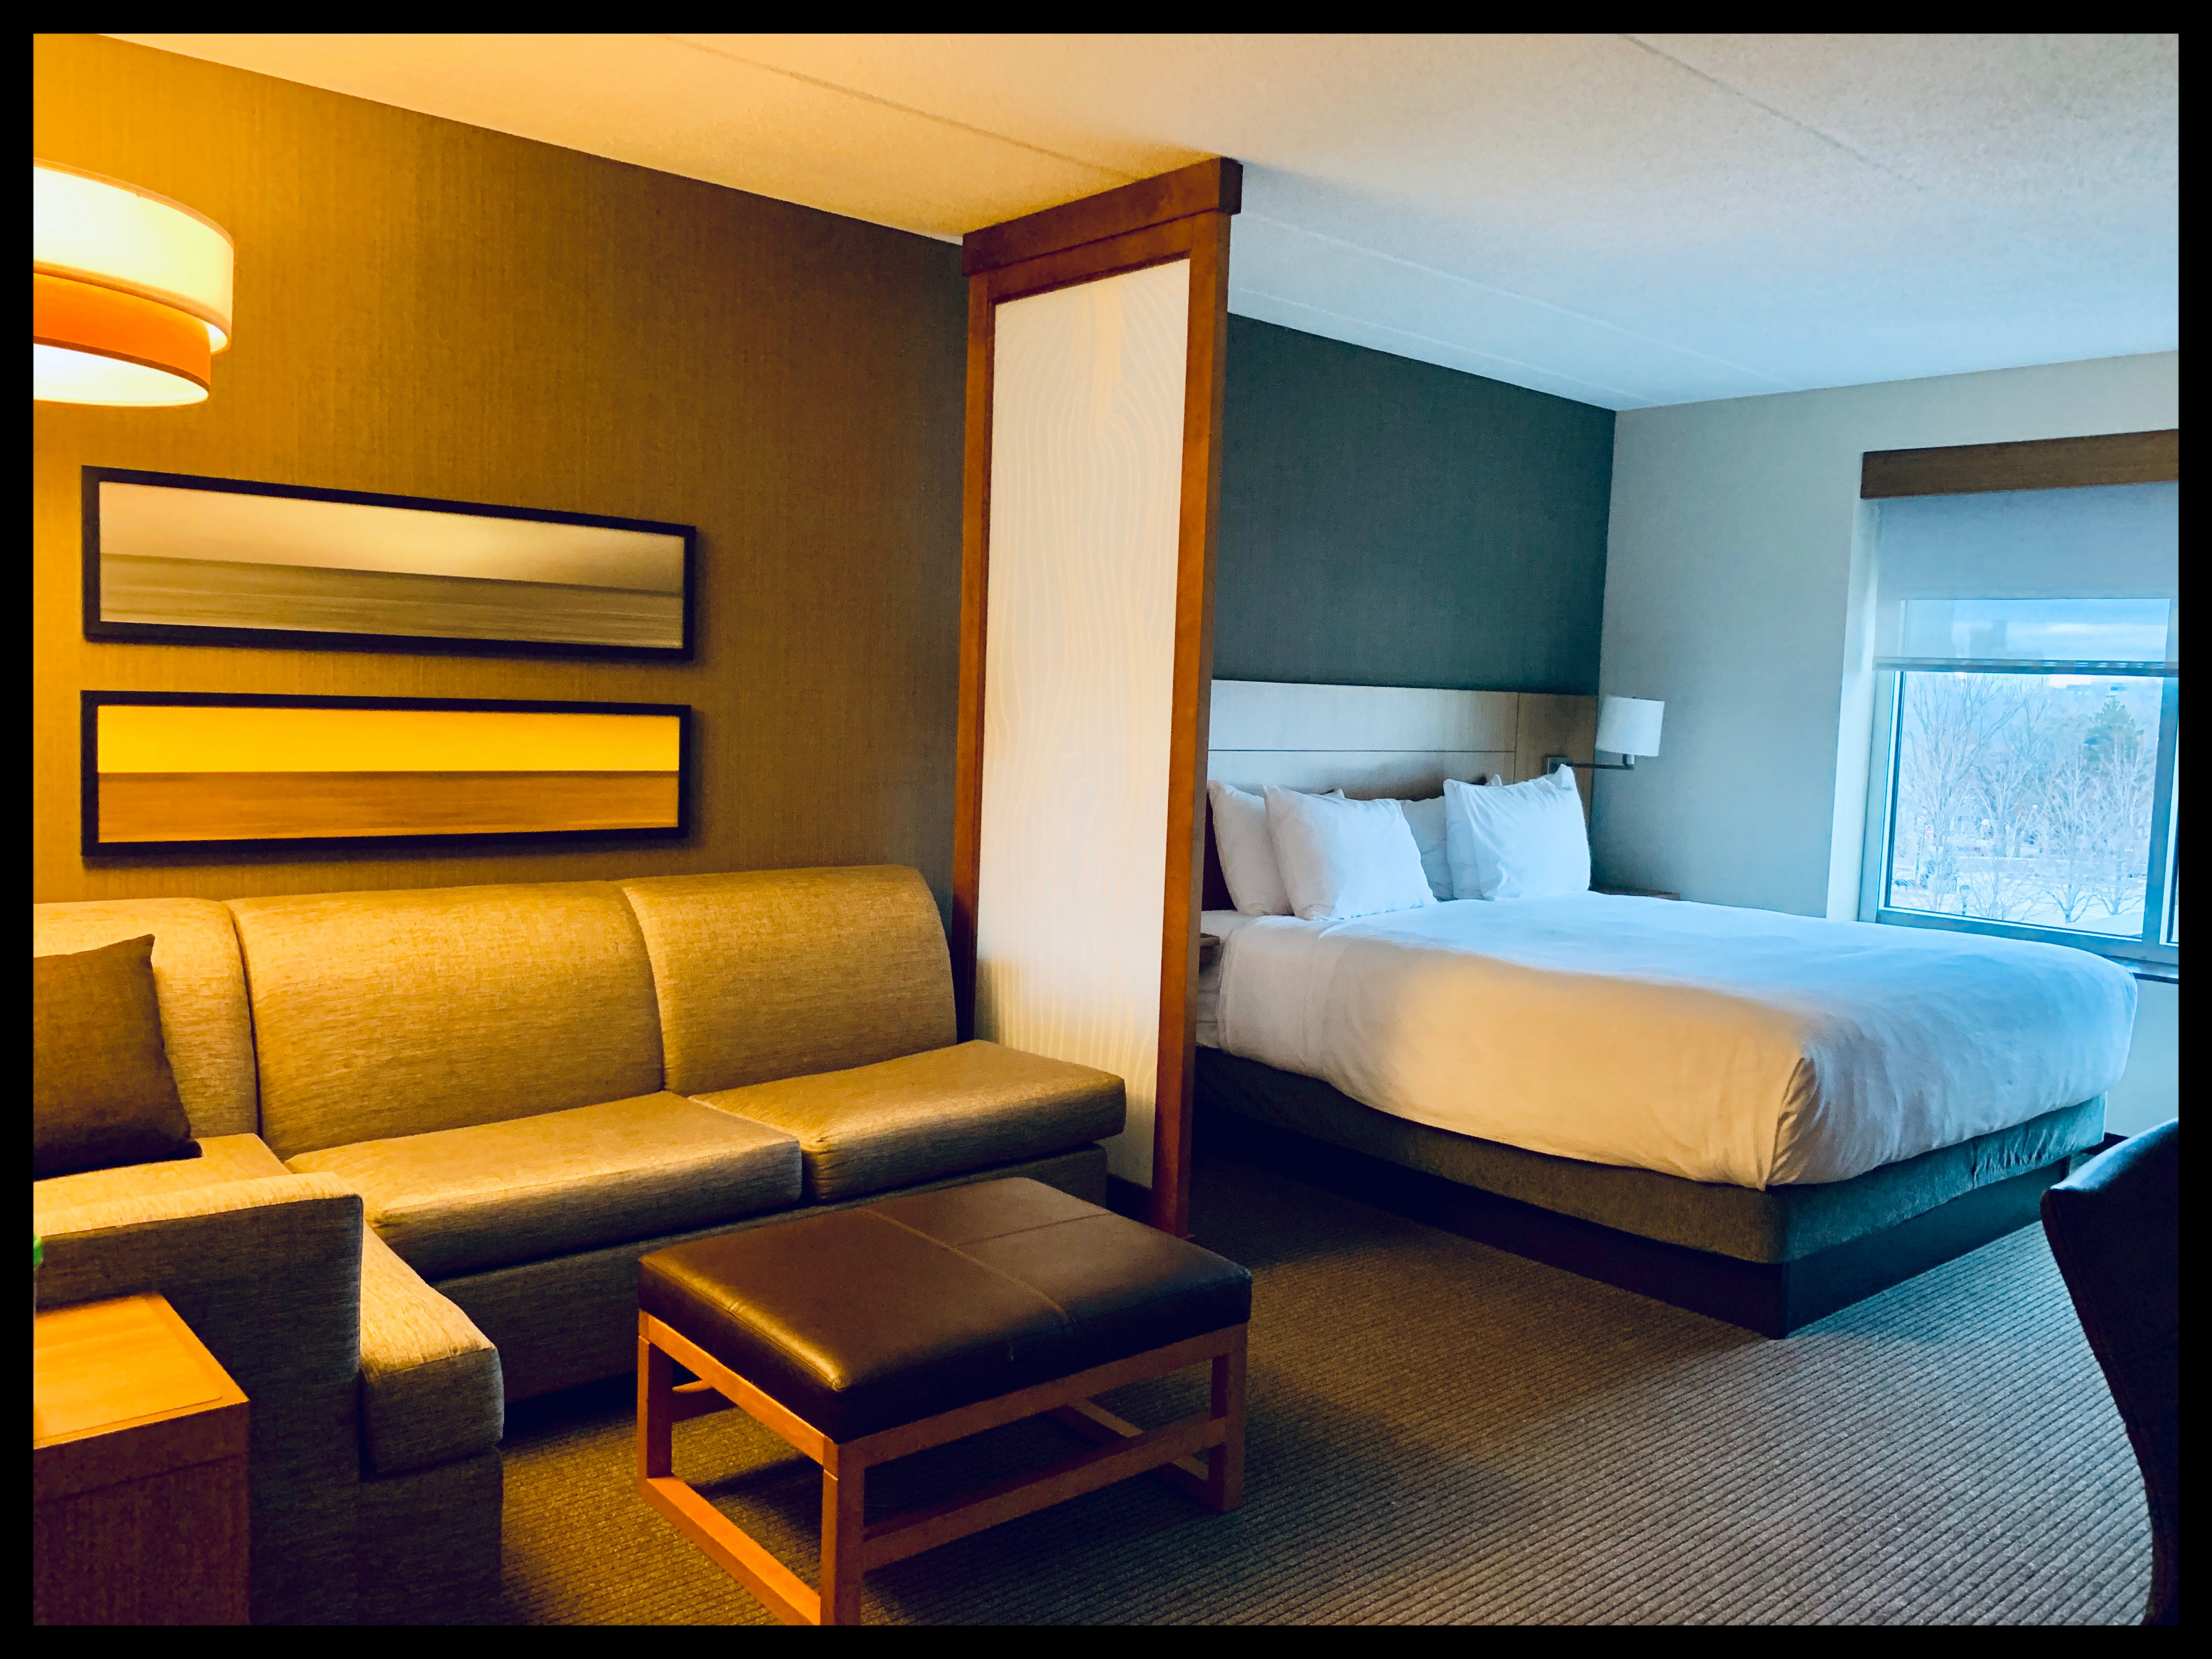 Hotel room with King size bed and couch/seating area